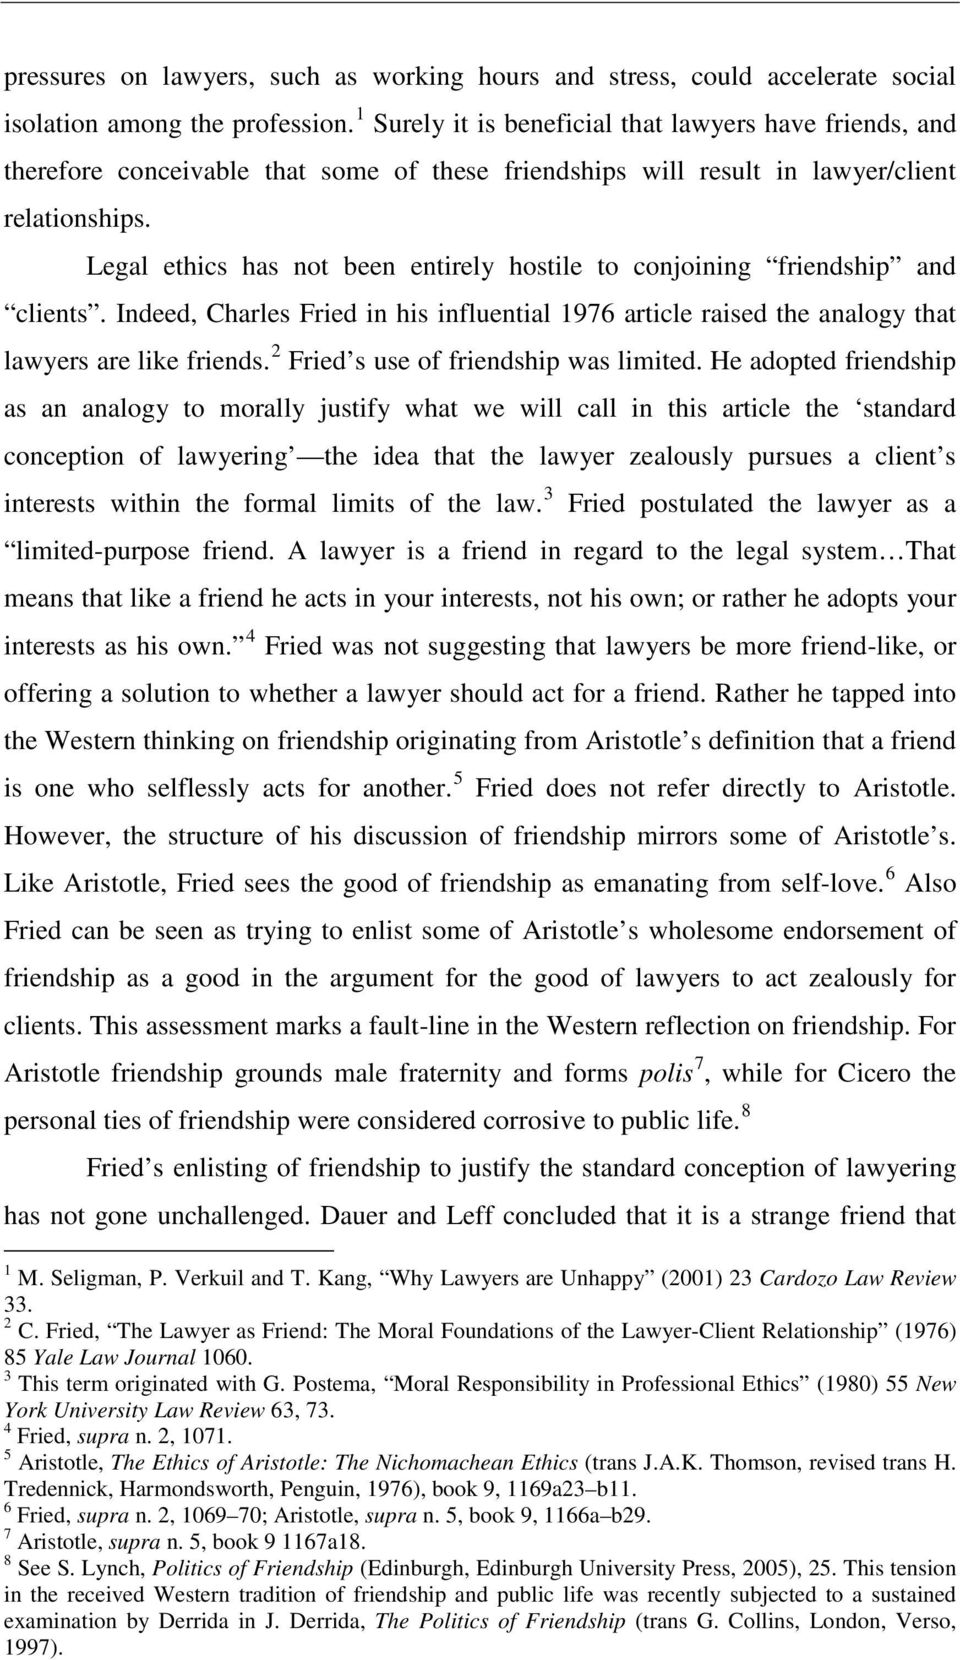 Legal ethics has not been entirely hostile to conjoining friendship and clients. Indeed, Charles Fried in his influential 1976 article raised the analogy that lawyers are like friends.